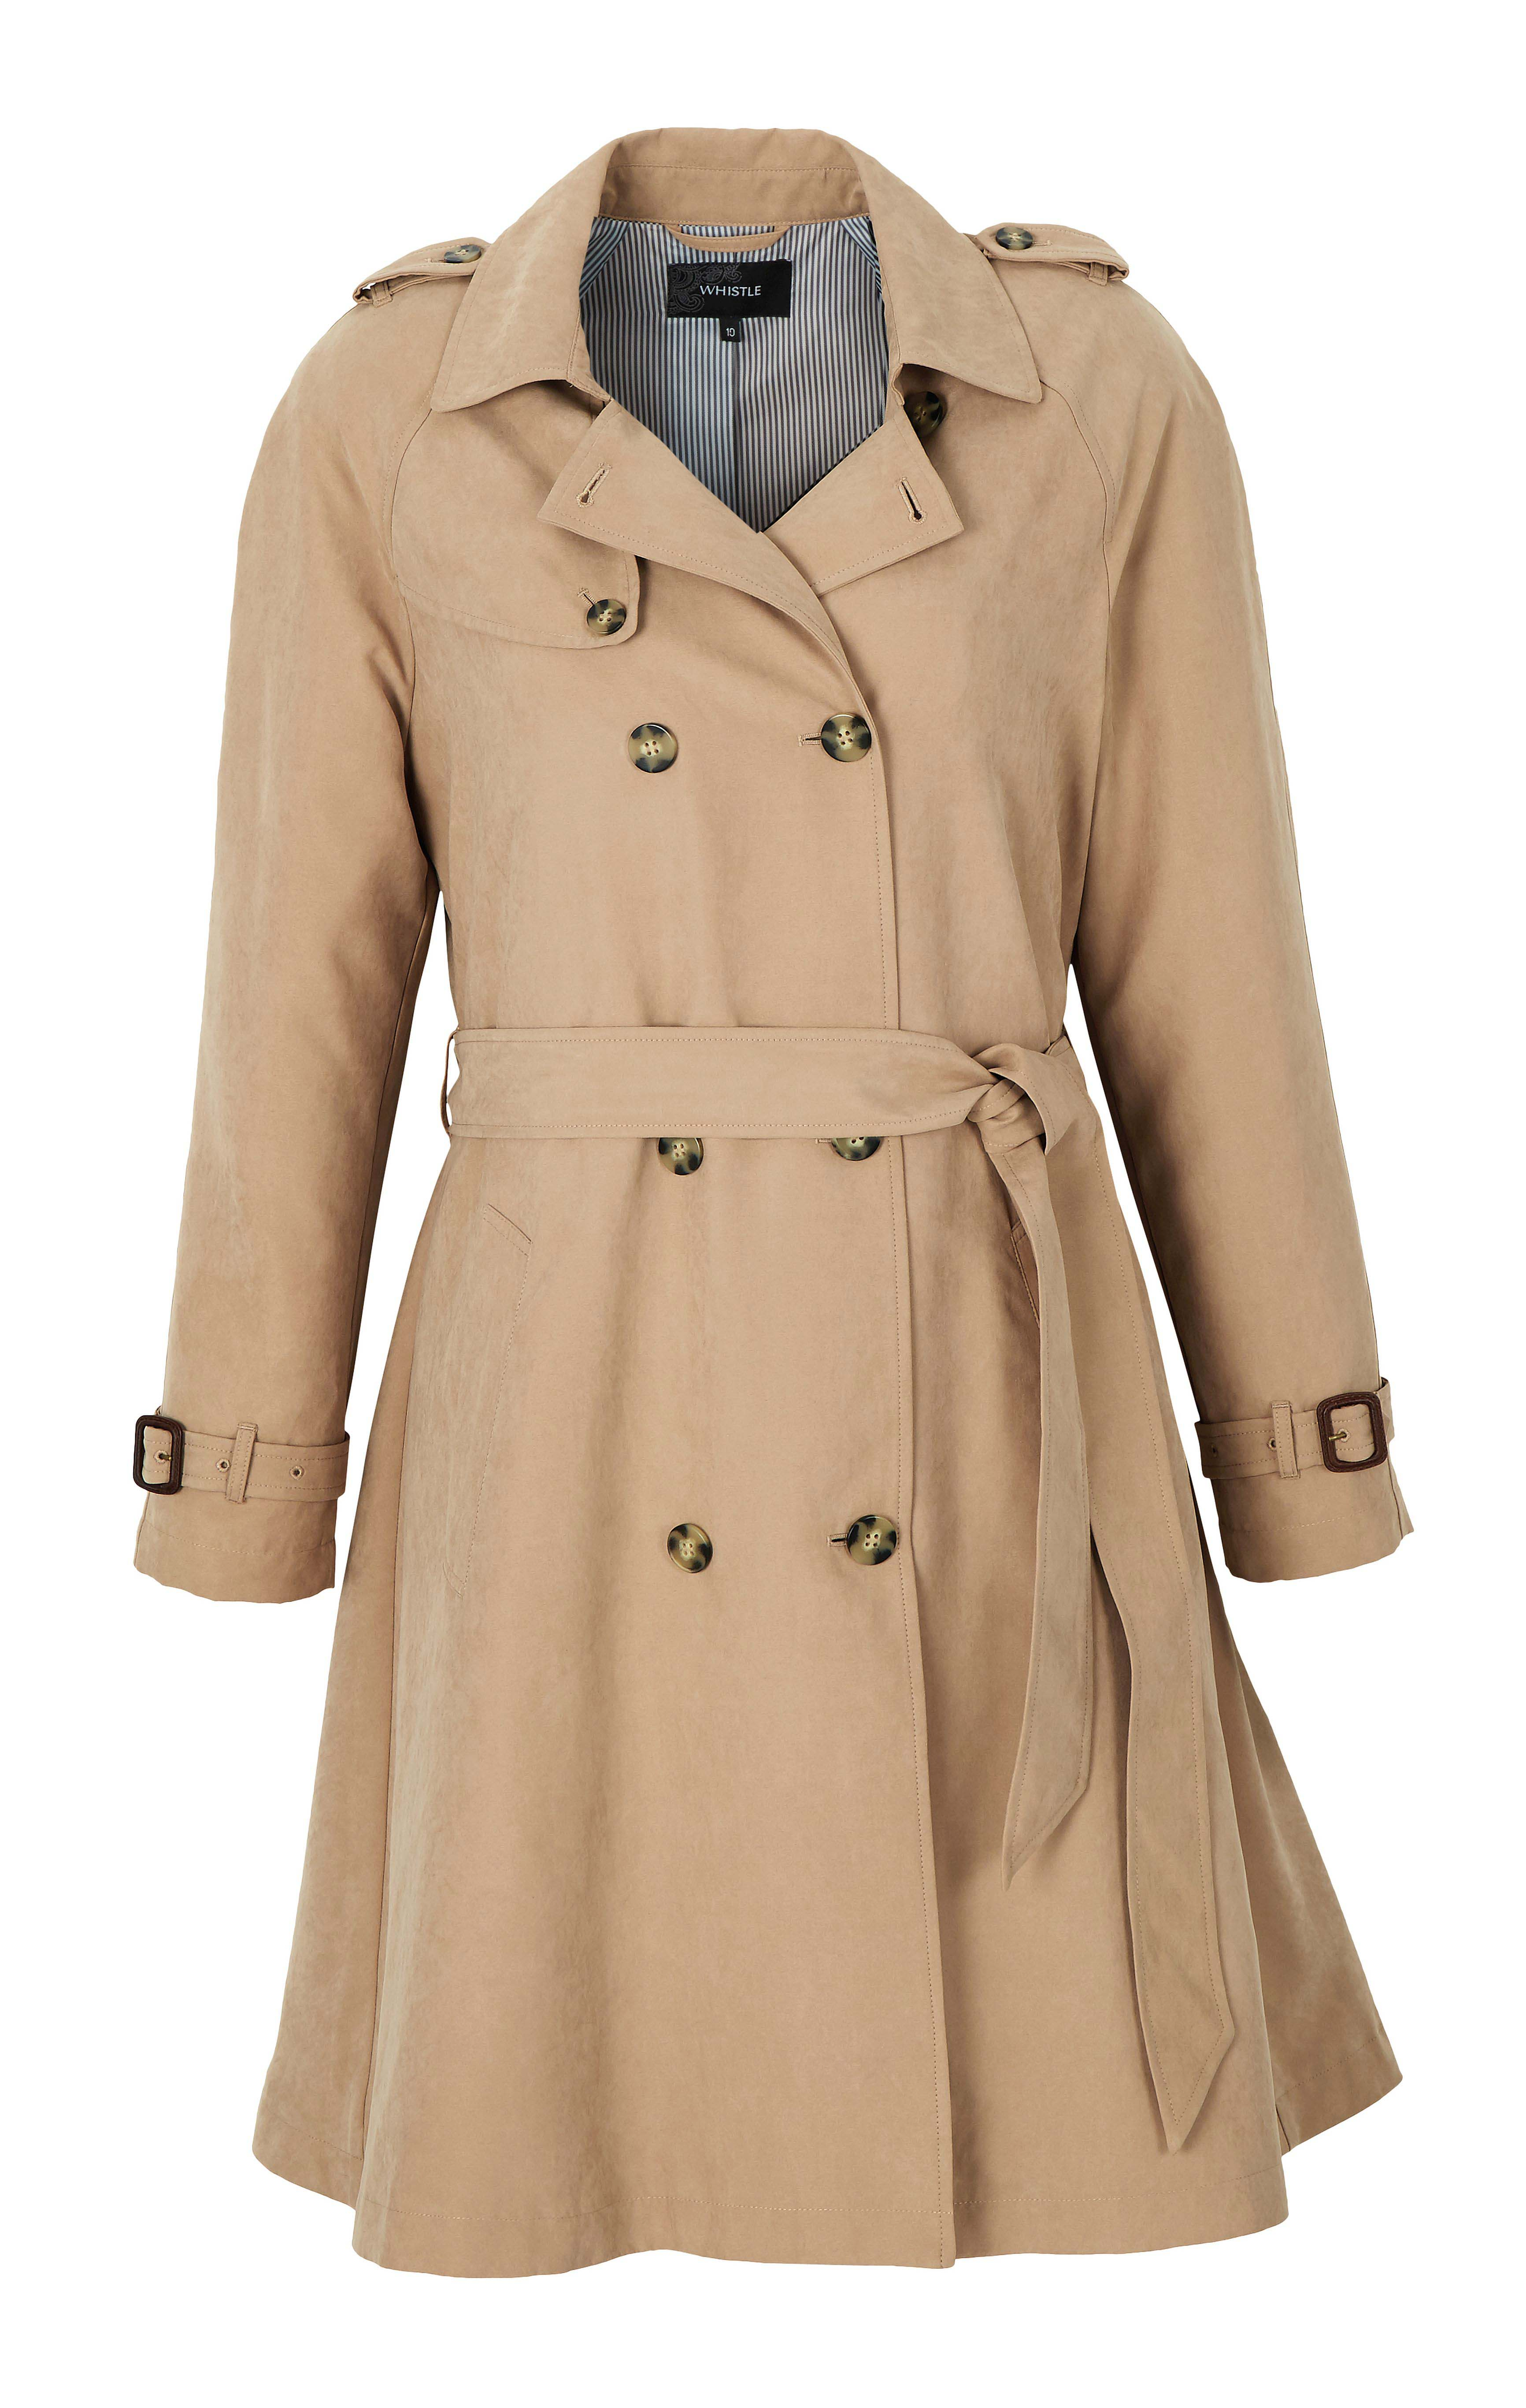 6085524 Whistle Trench Coat $149.99 Instore March 09 2016